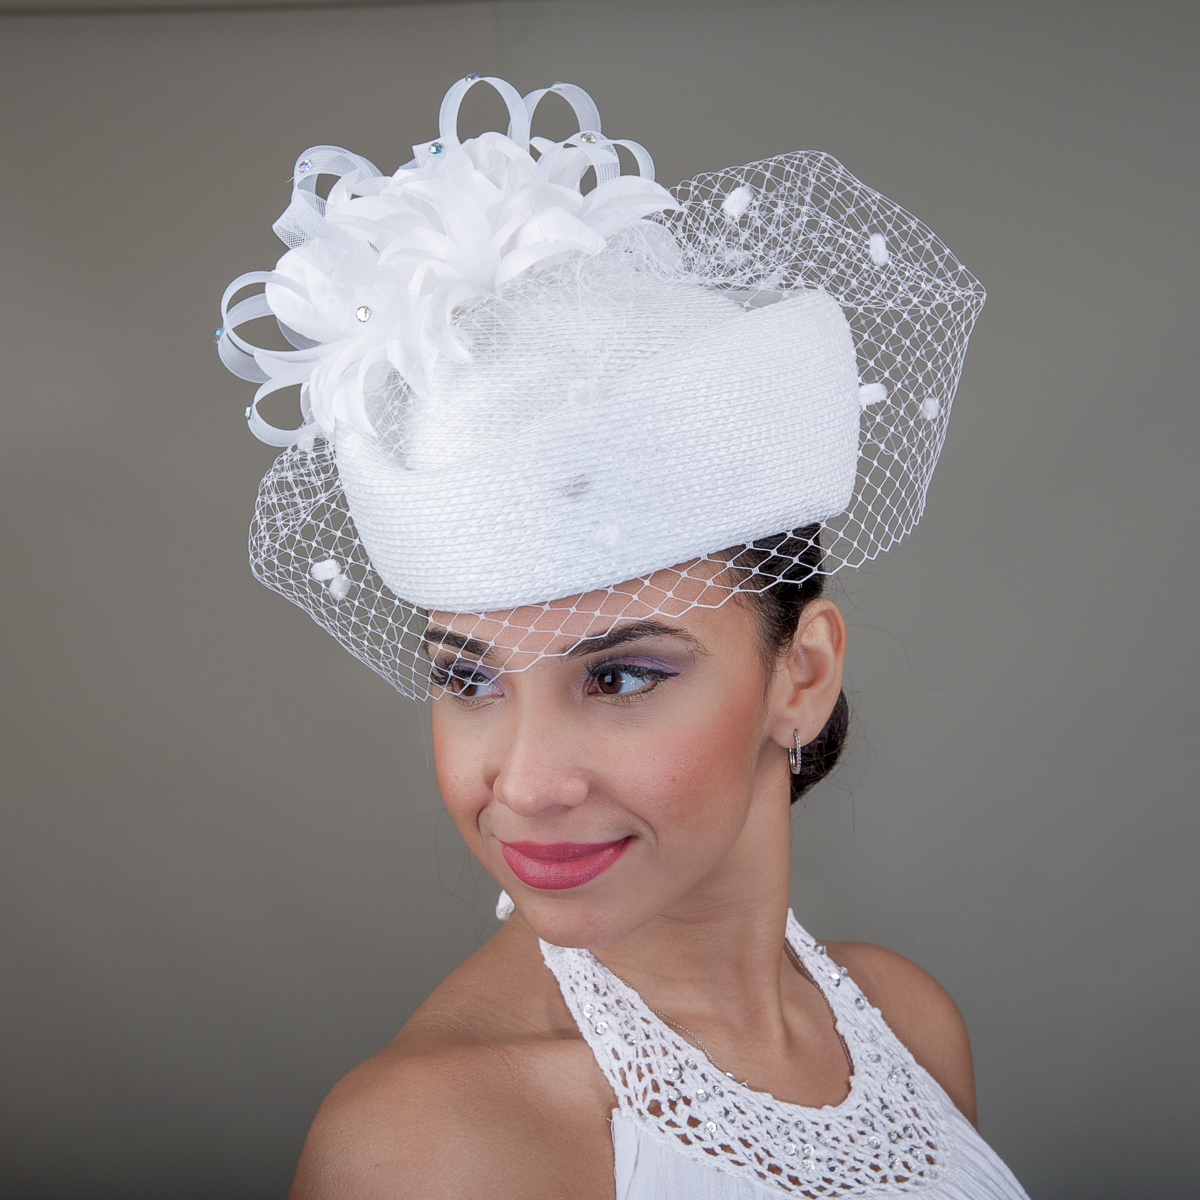 White Flower Veil Pillbox Hats 301725 WT Sun Yorkos